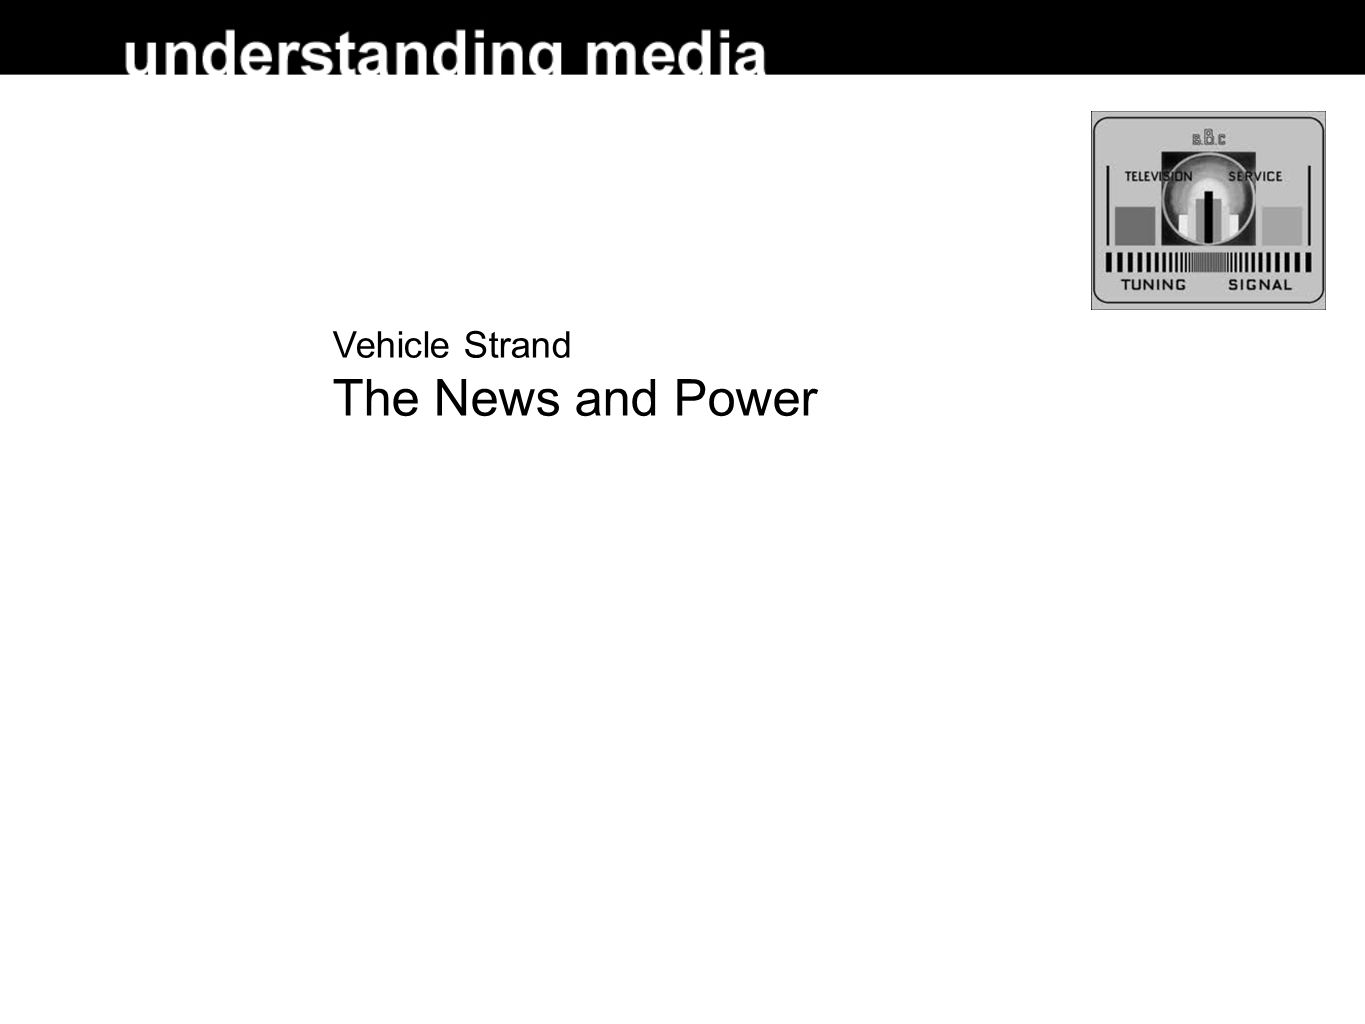 Vehicle Strand The News and Power